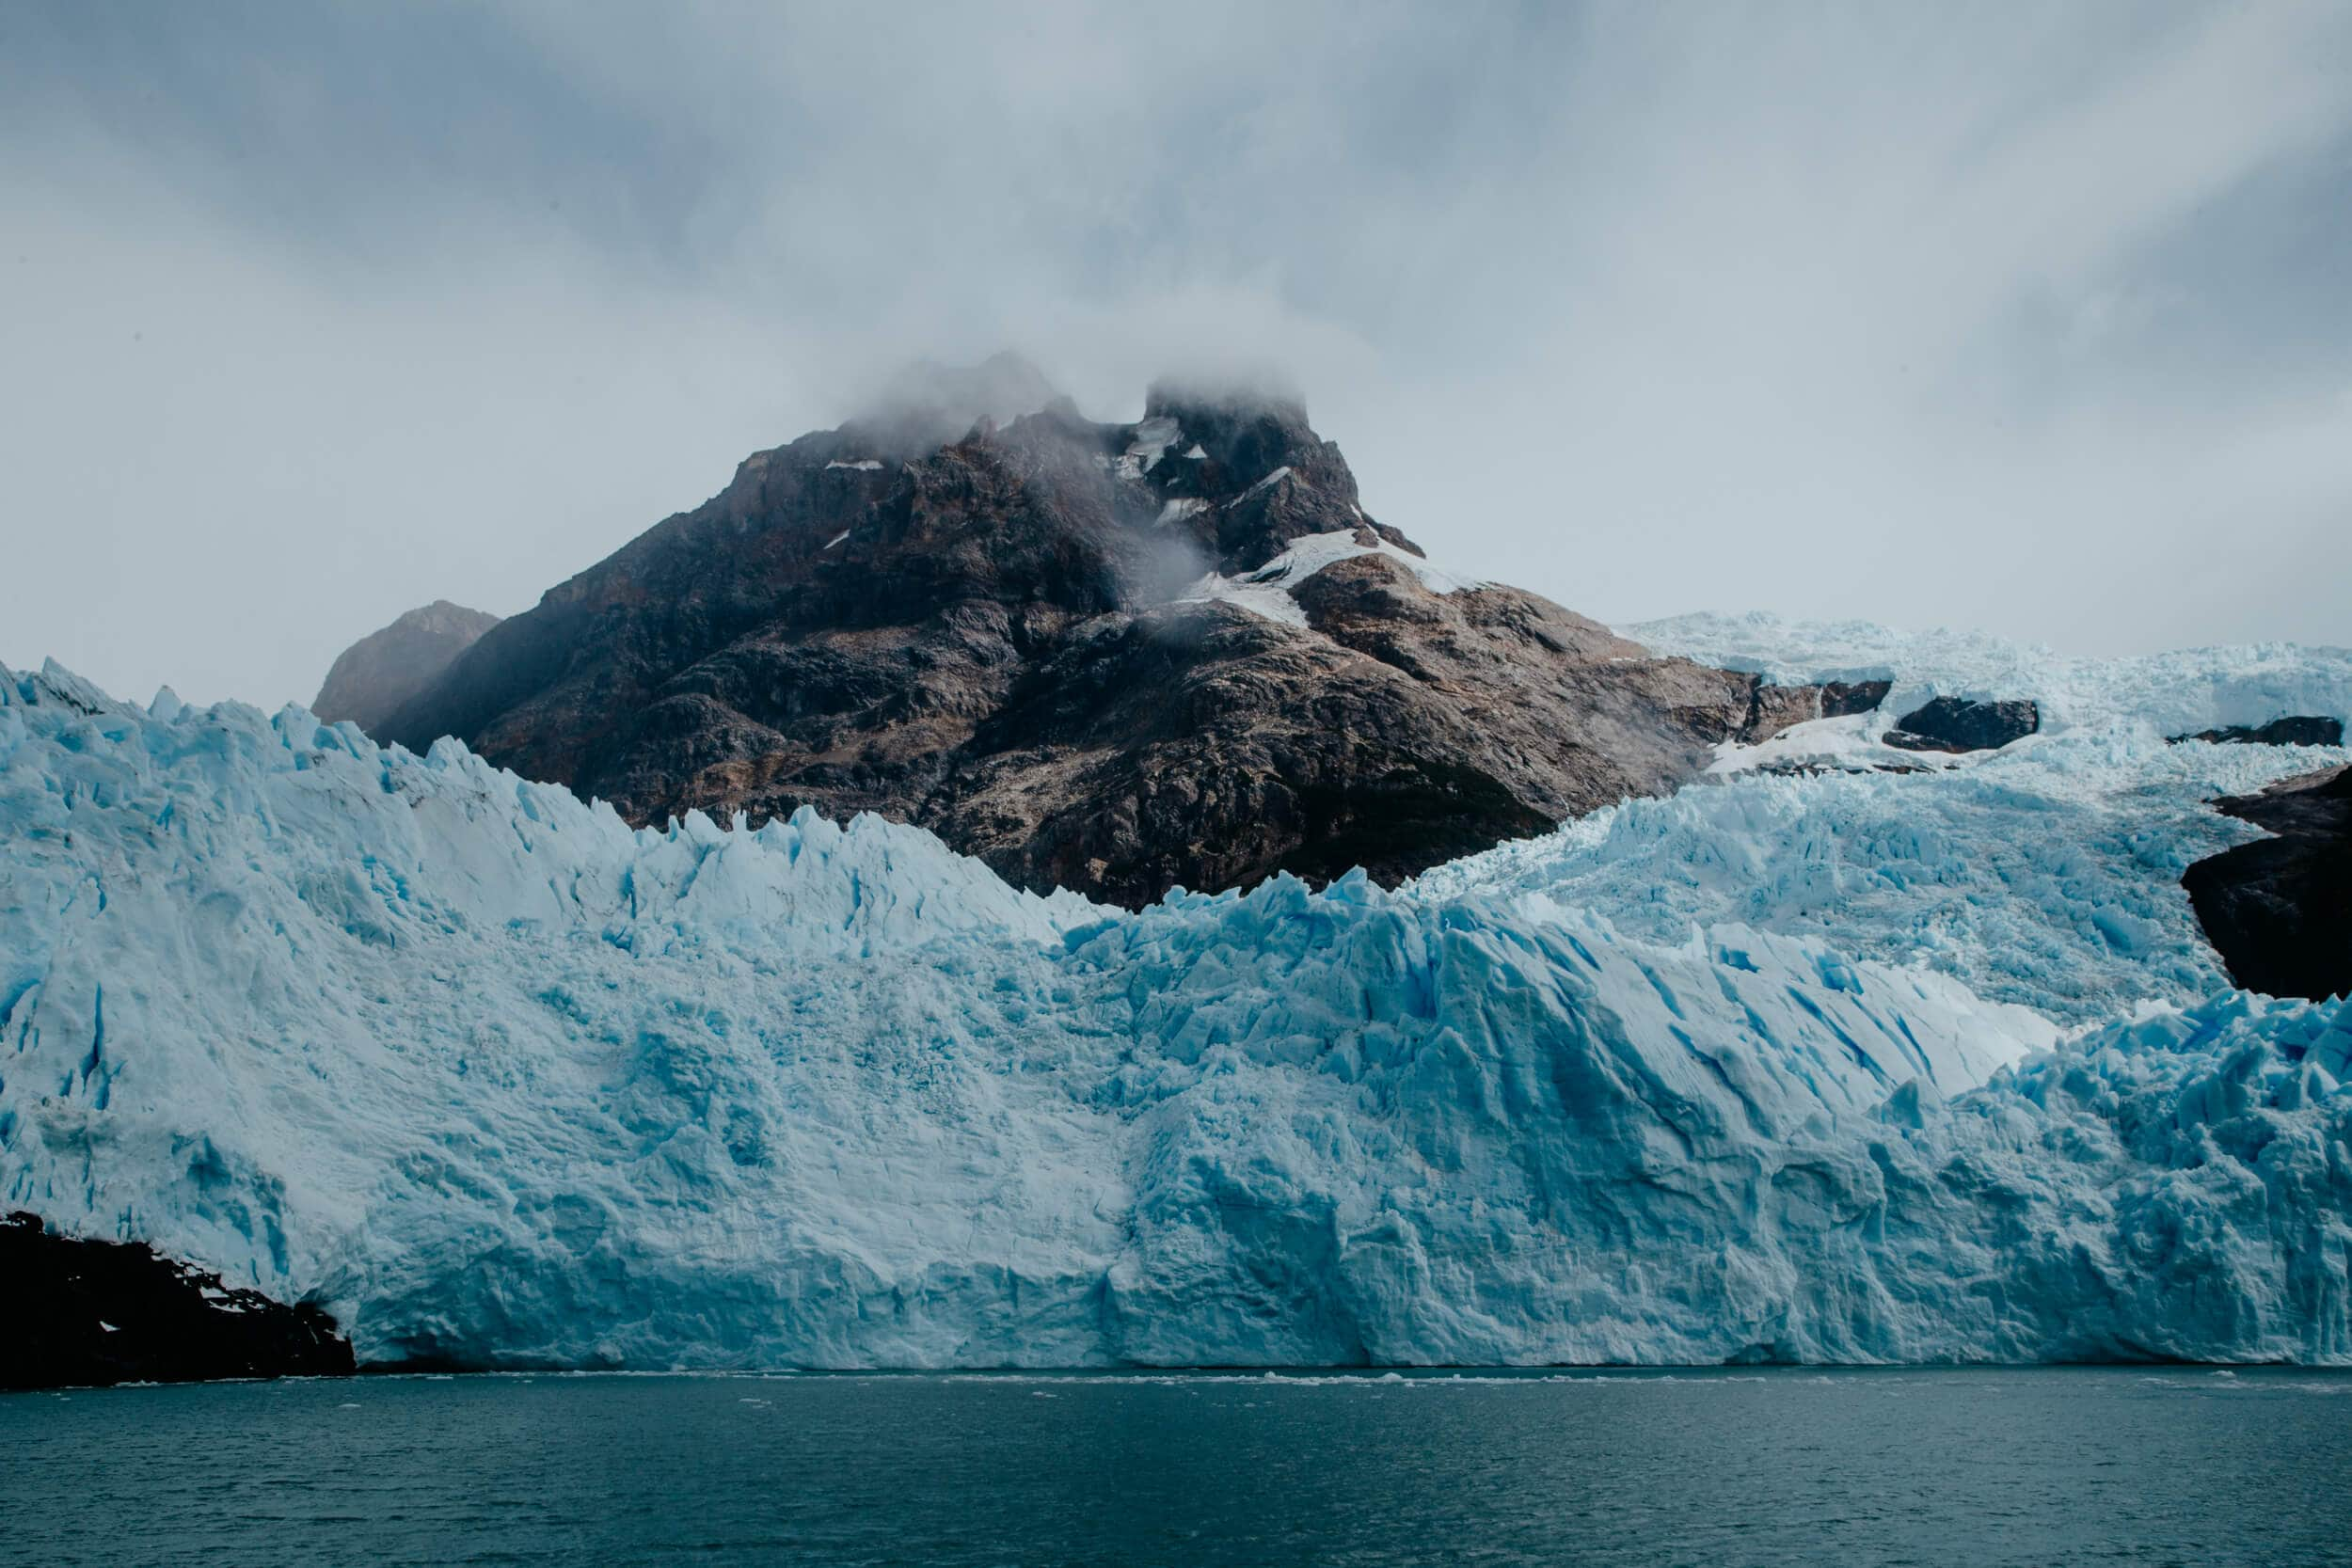 A large bright blue glacier in front of a grey mountain covered in dark clouds